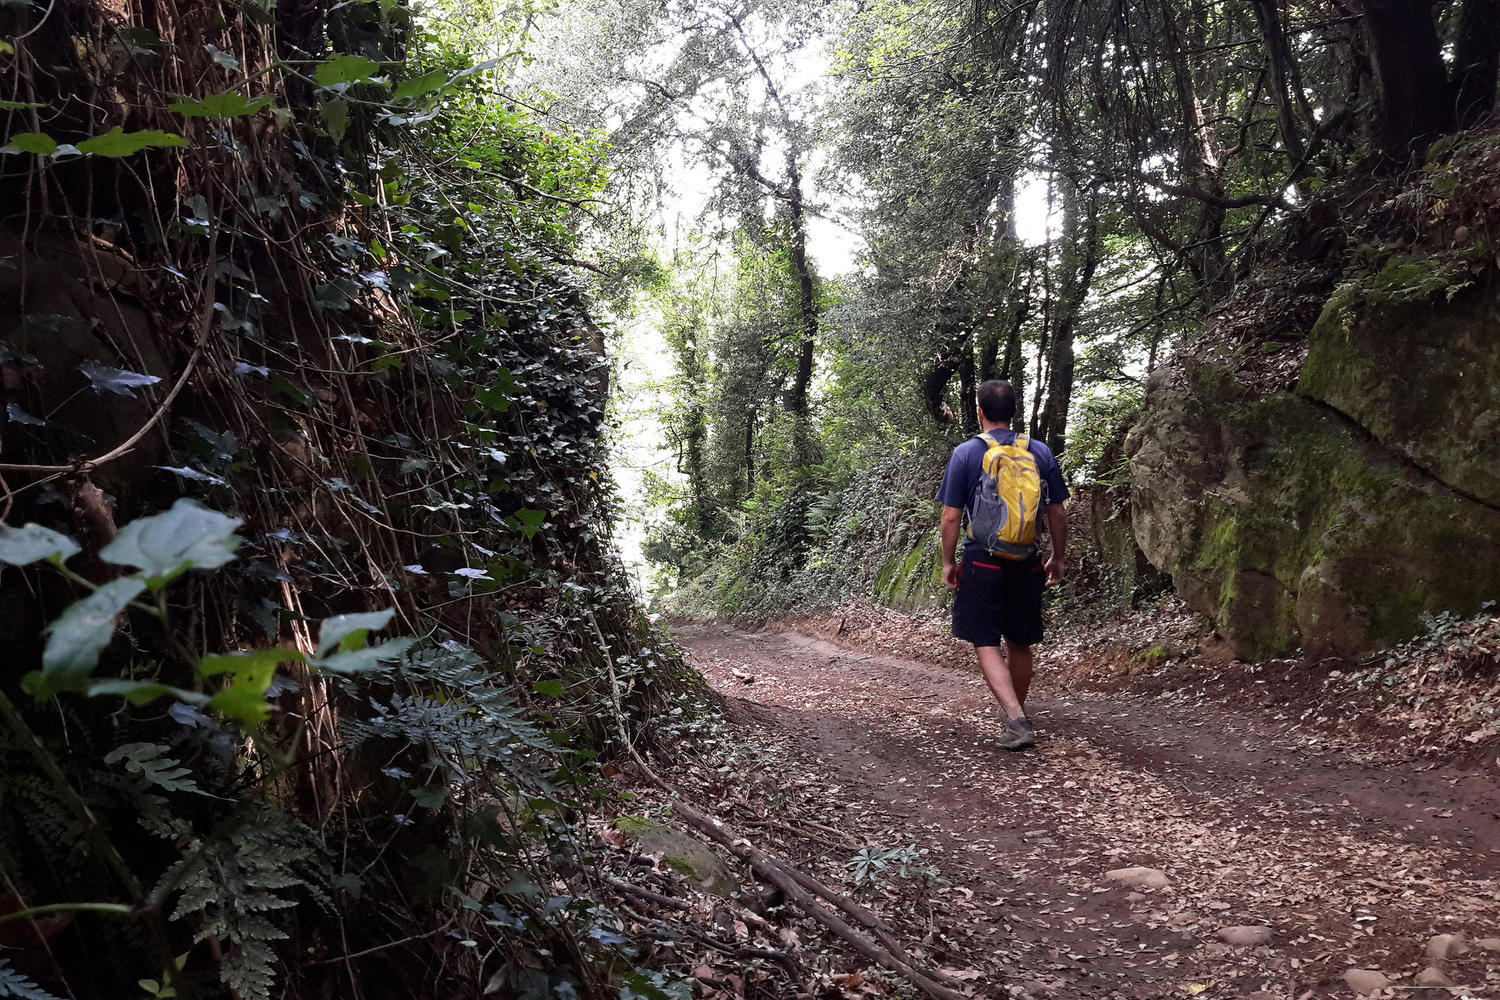 Shady forest trails in Garrotxa Natural Park